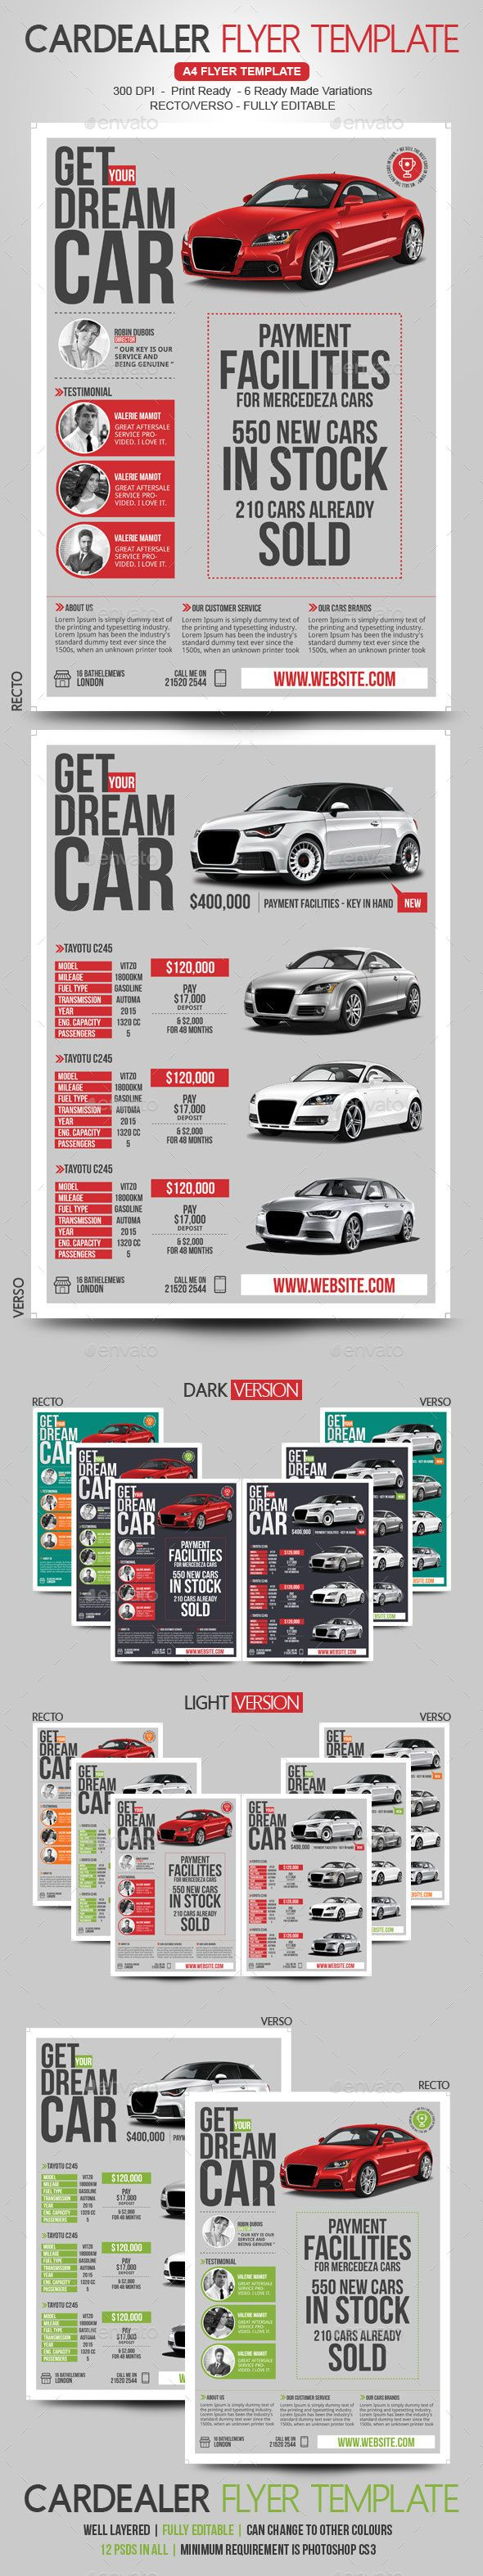 Car Dealer & Auto Services Business Flyer by BloganKids Do you sell CARS? Increase your sales and clients by using this Promotional Flyer.This is a Must-Have for Car Dealers and Auto Ser